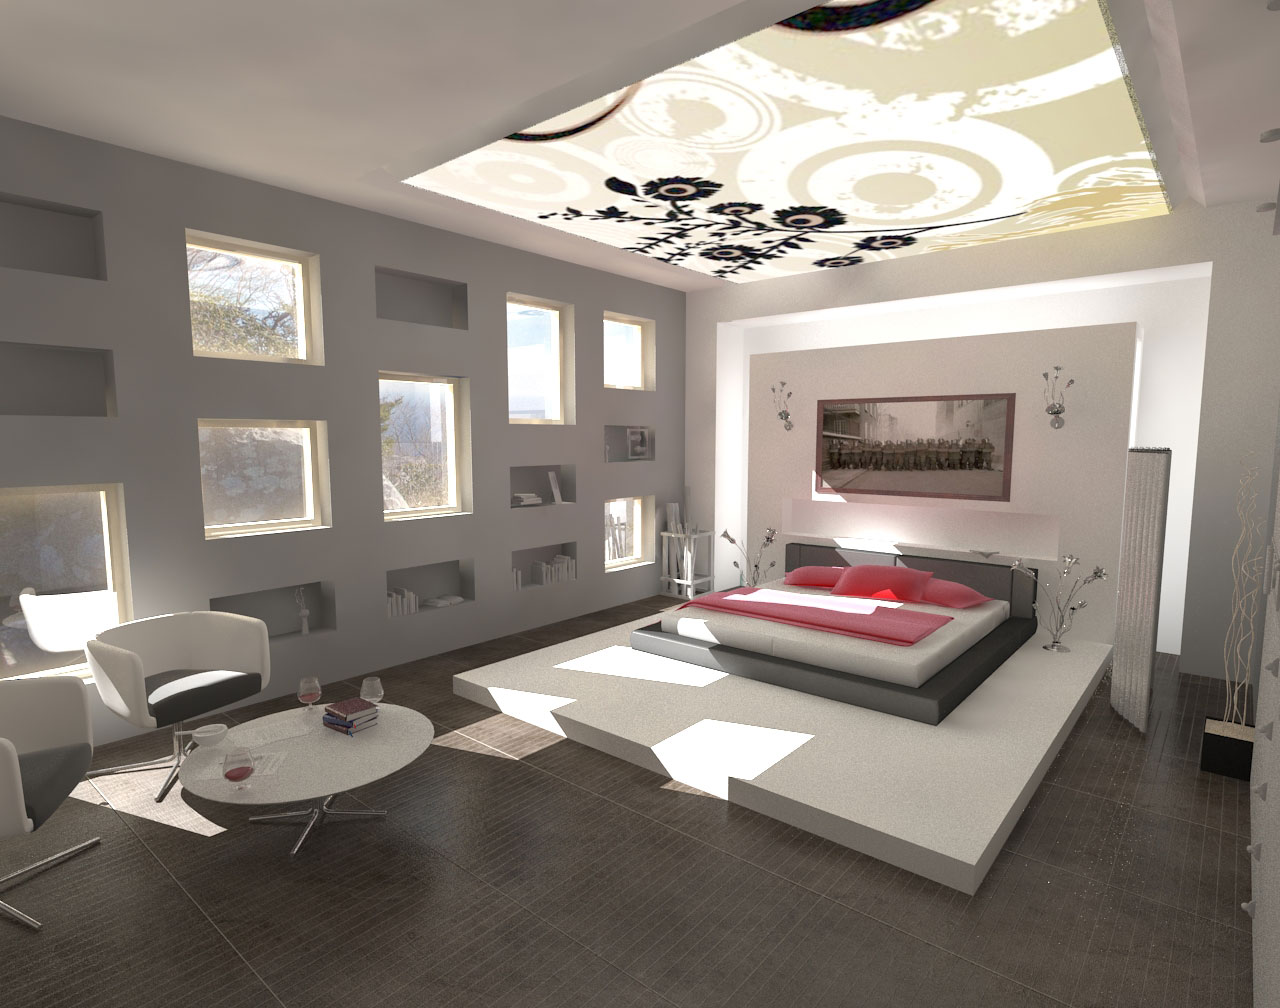 Modern Bedroom Interior Design Ideas 1280 x 1008